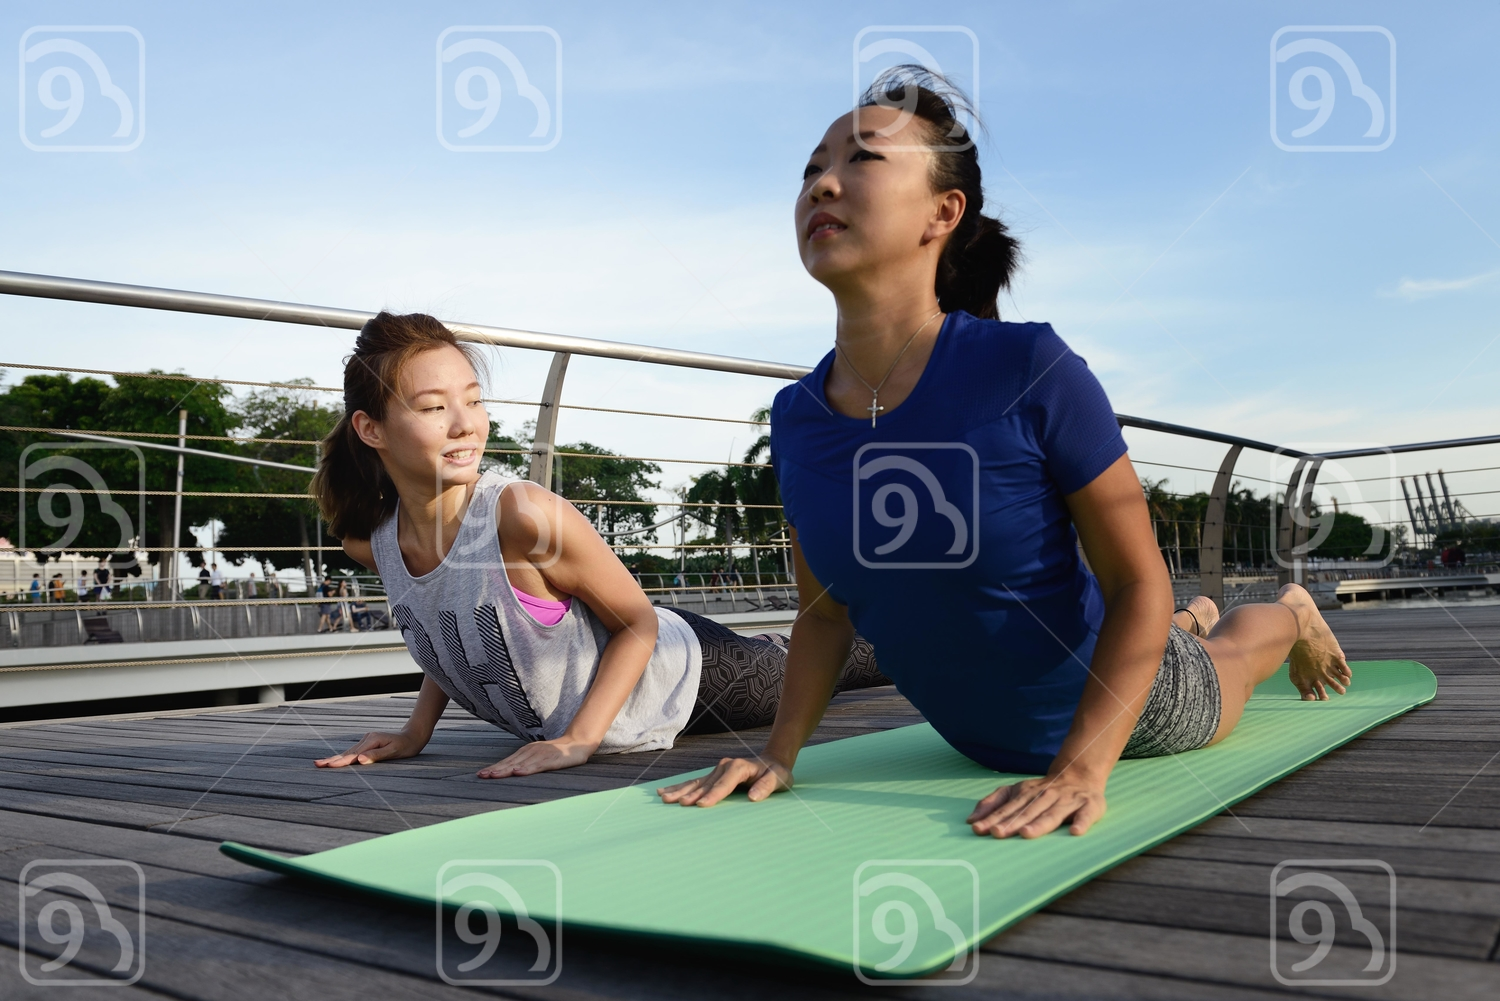 Bonding over Yoga at Marina Bay Sands